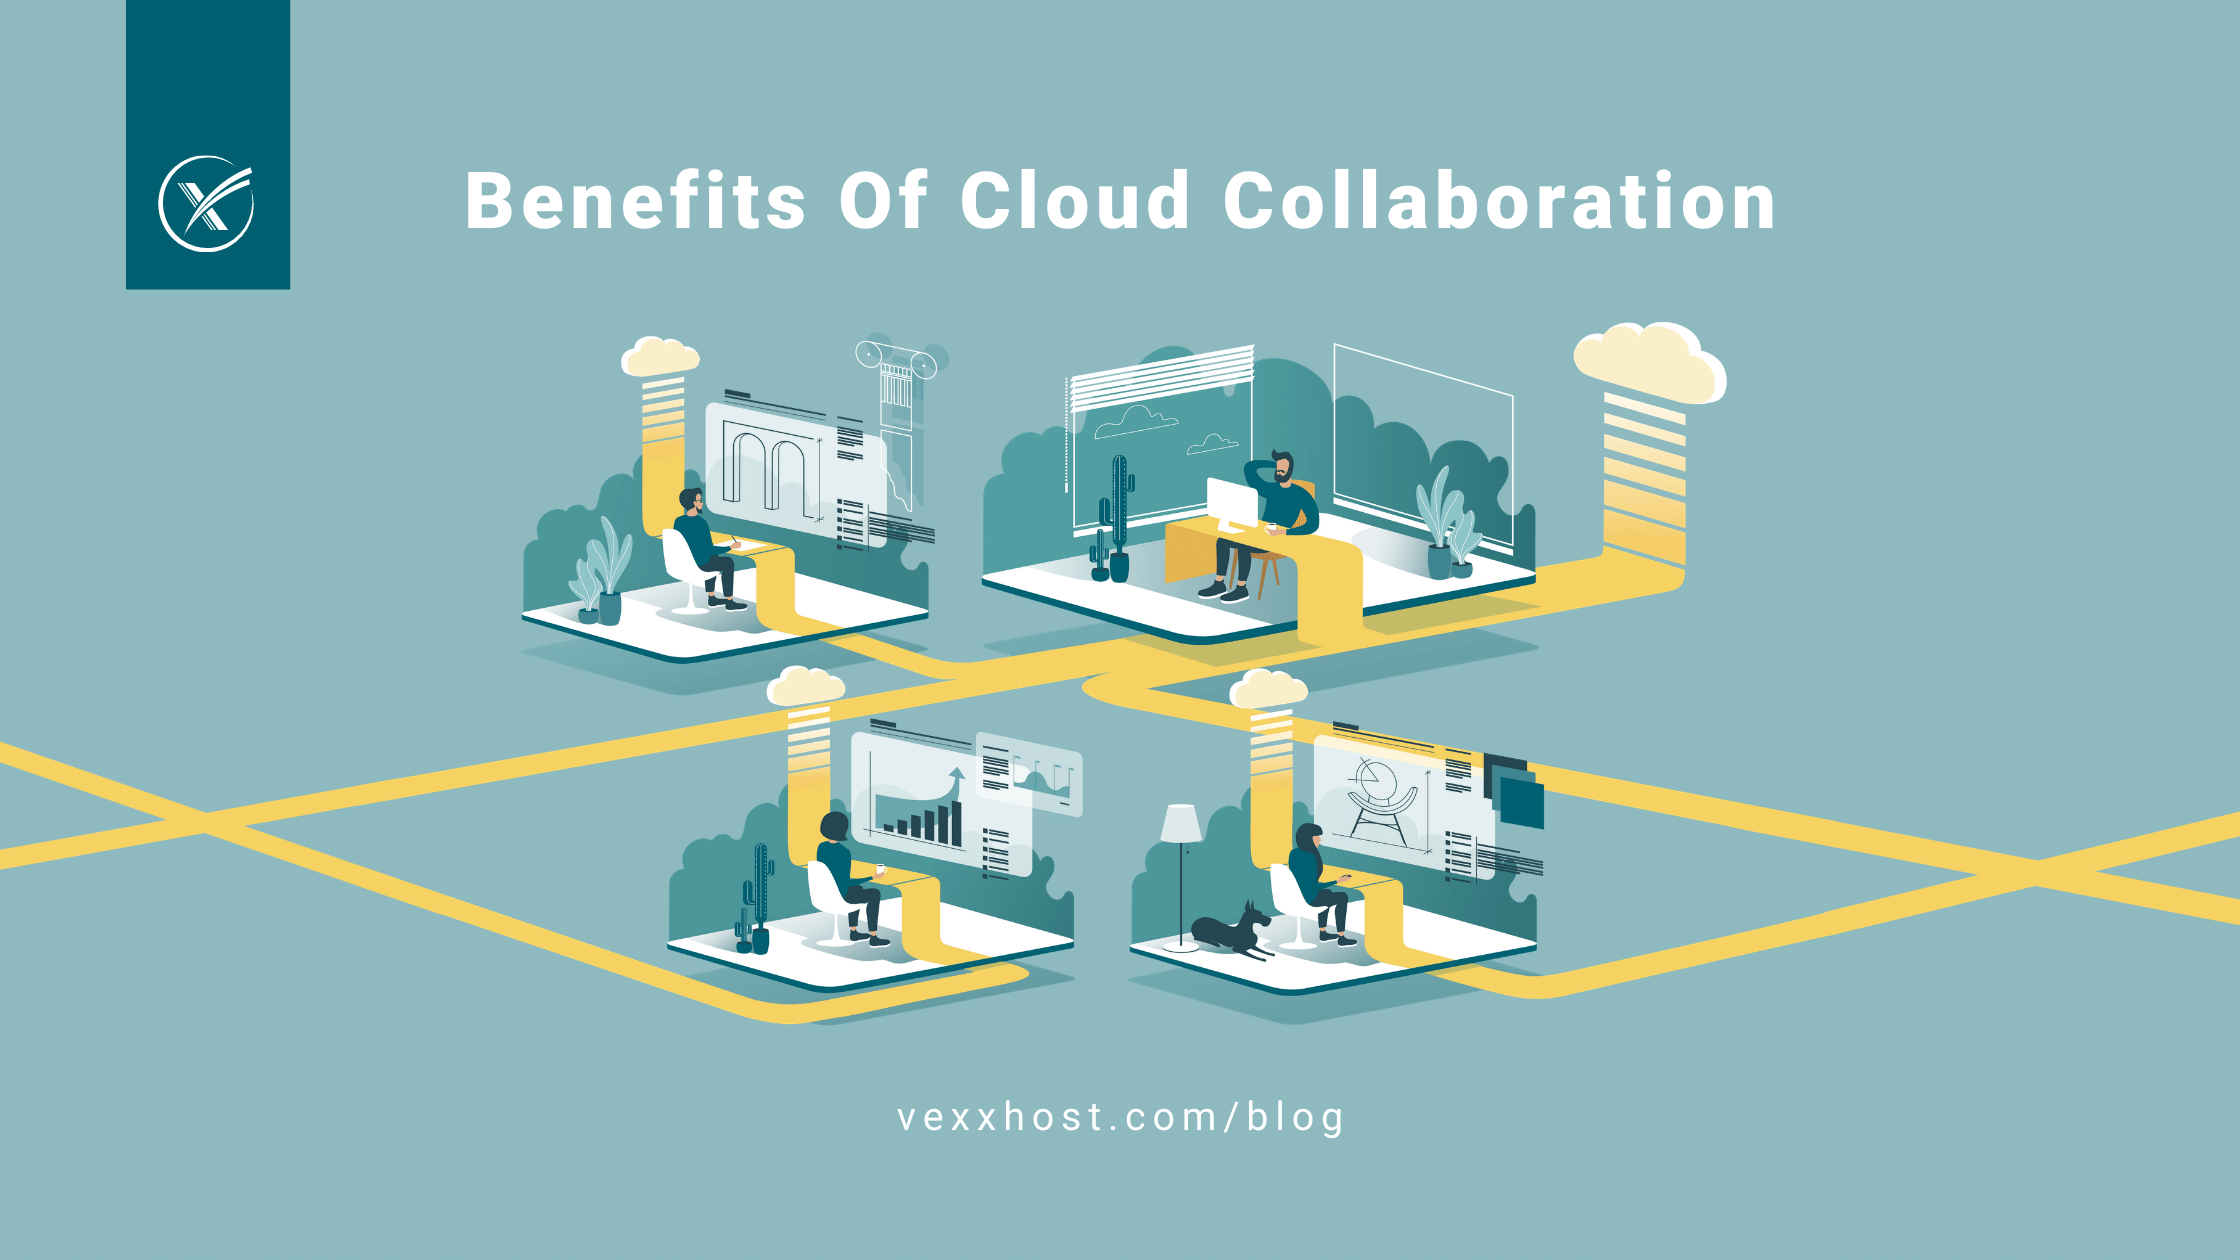 Benefits Of Cloud Collaboration